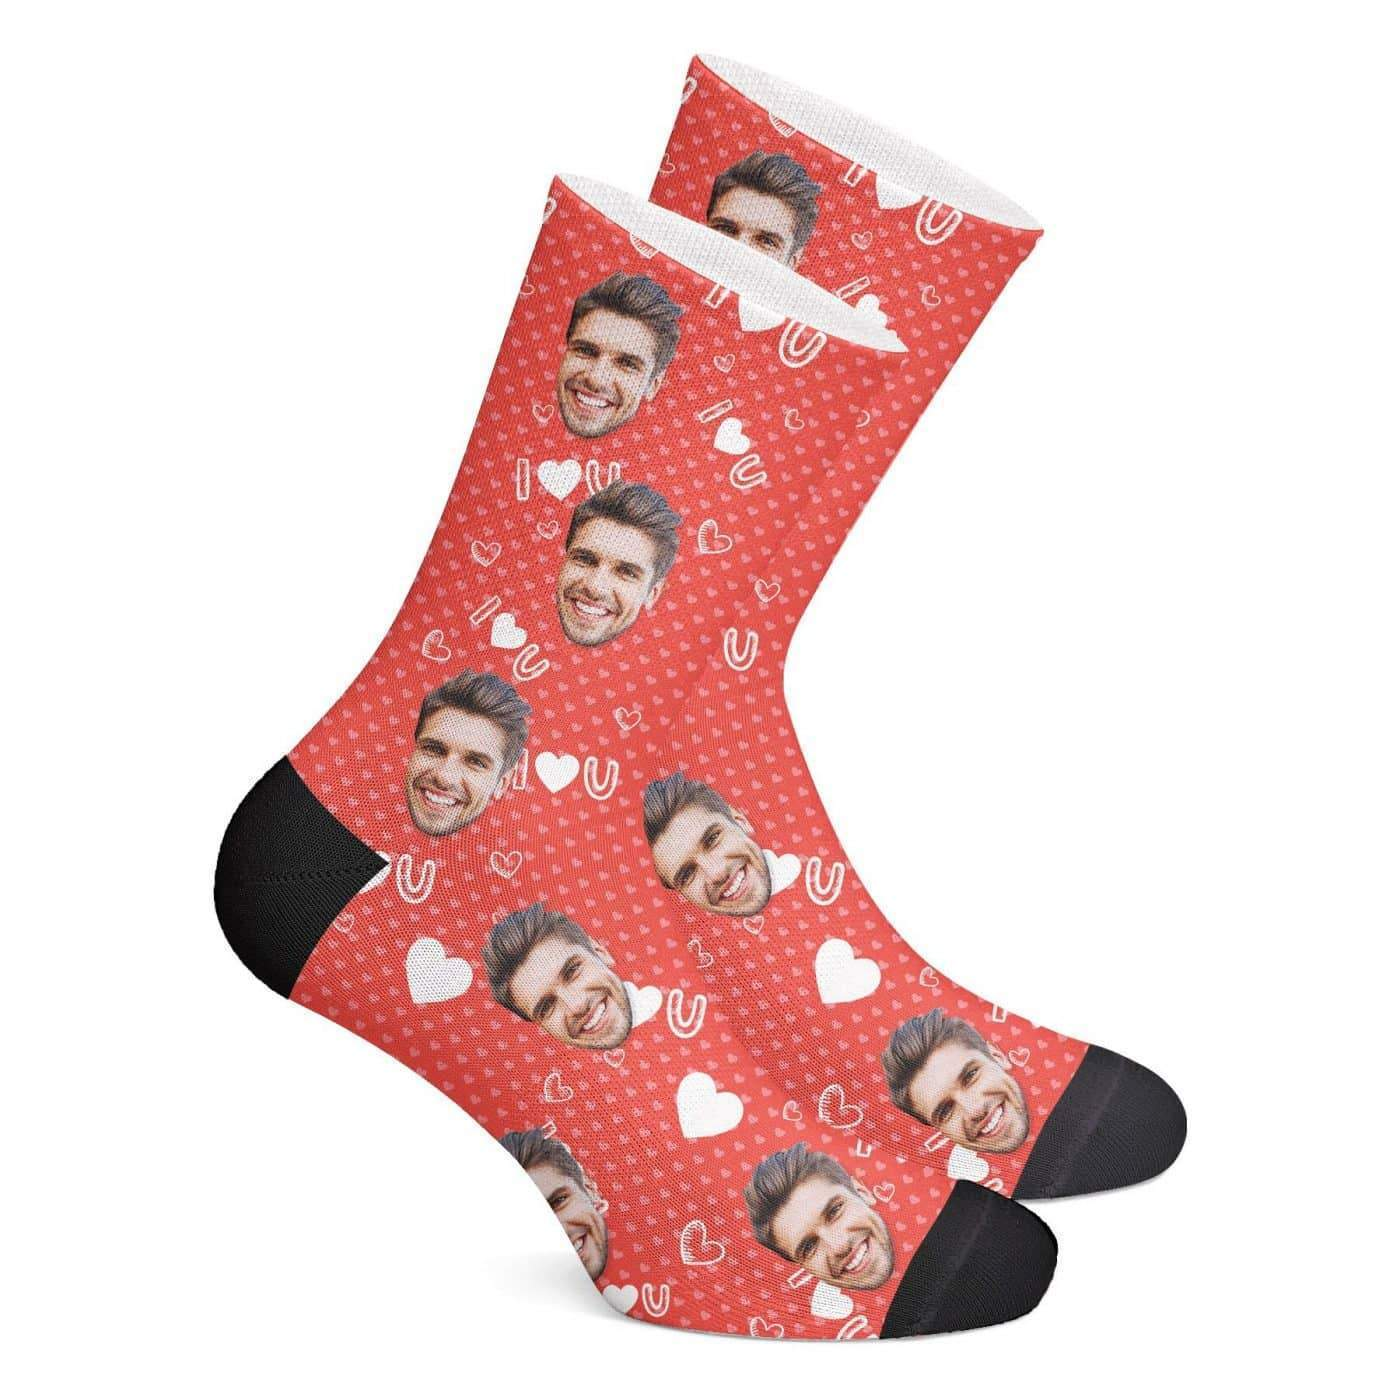 Custom Love Socks - GesichtSocken